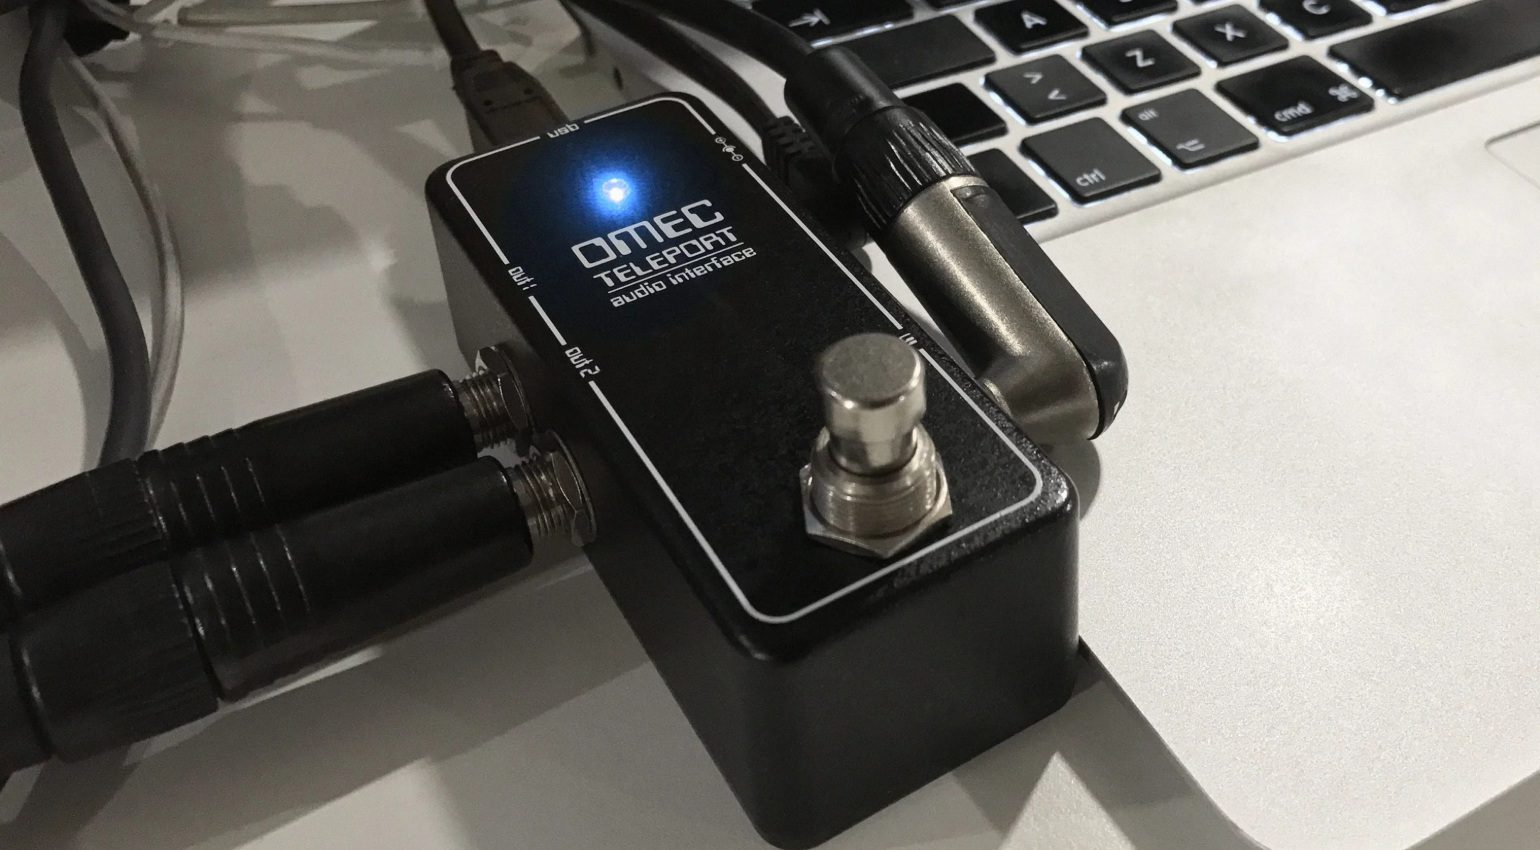 Usb Interface Im Pedal Orange Omec Teleport Gearnews De